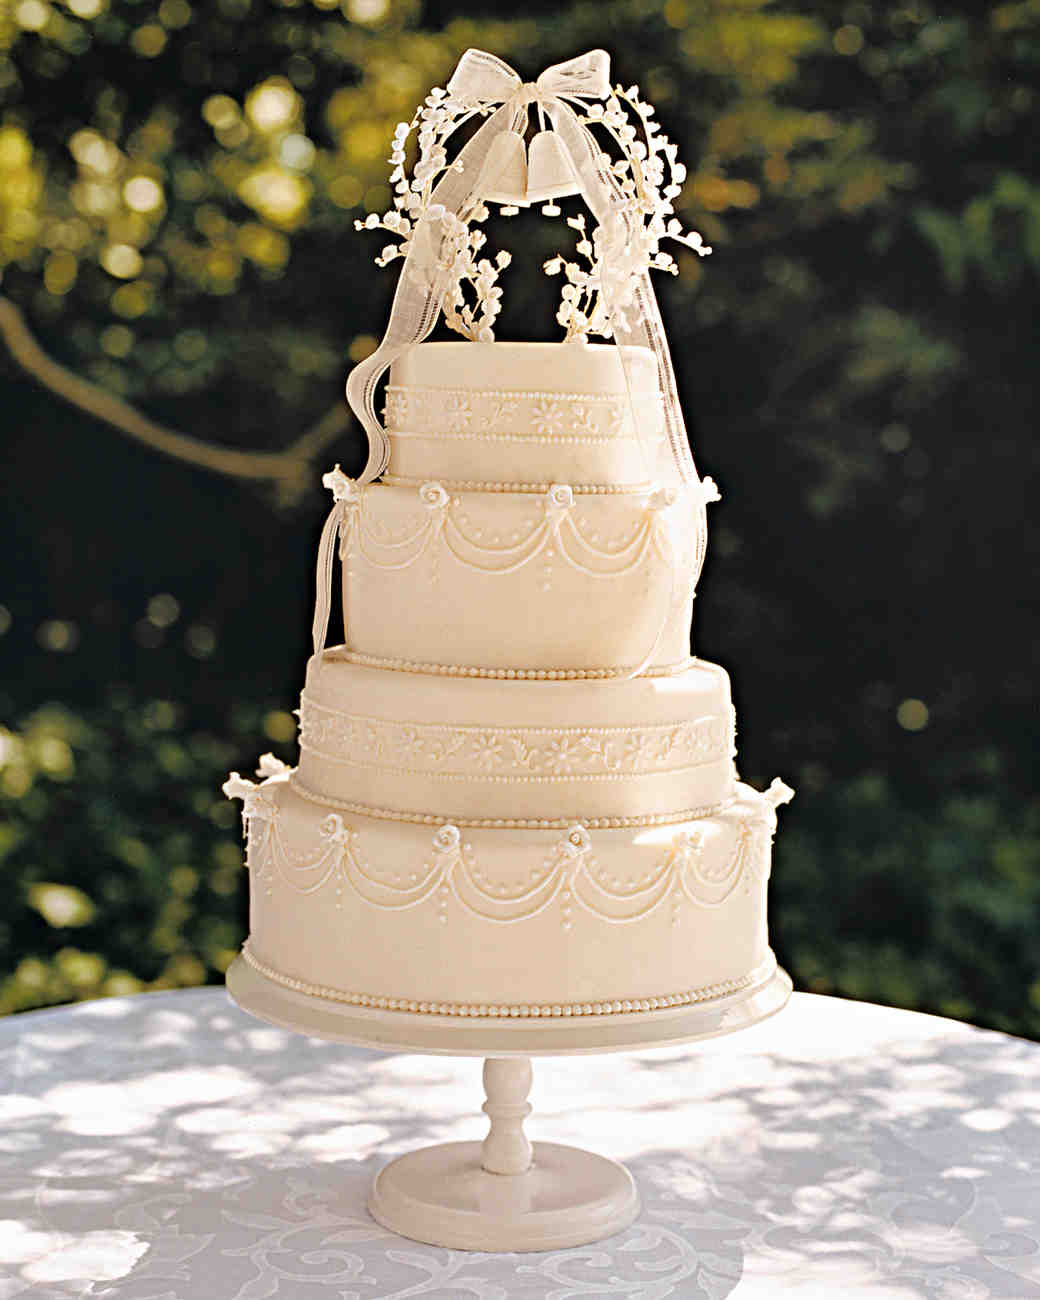 wedding cakes toppers 36 of the best wedding cake toppers martha stewart weddings 8923